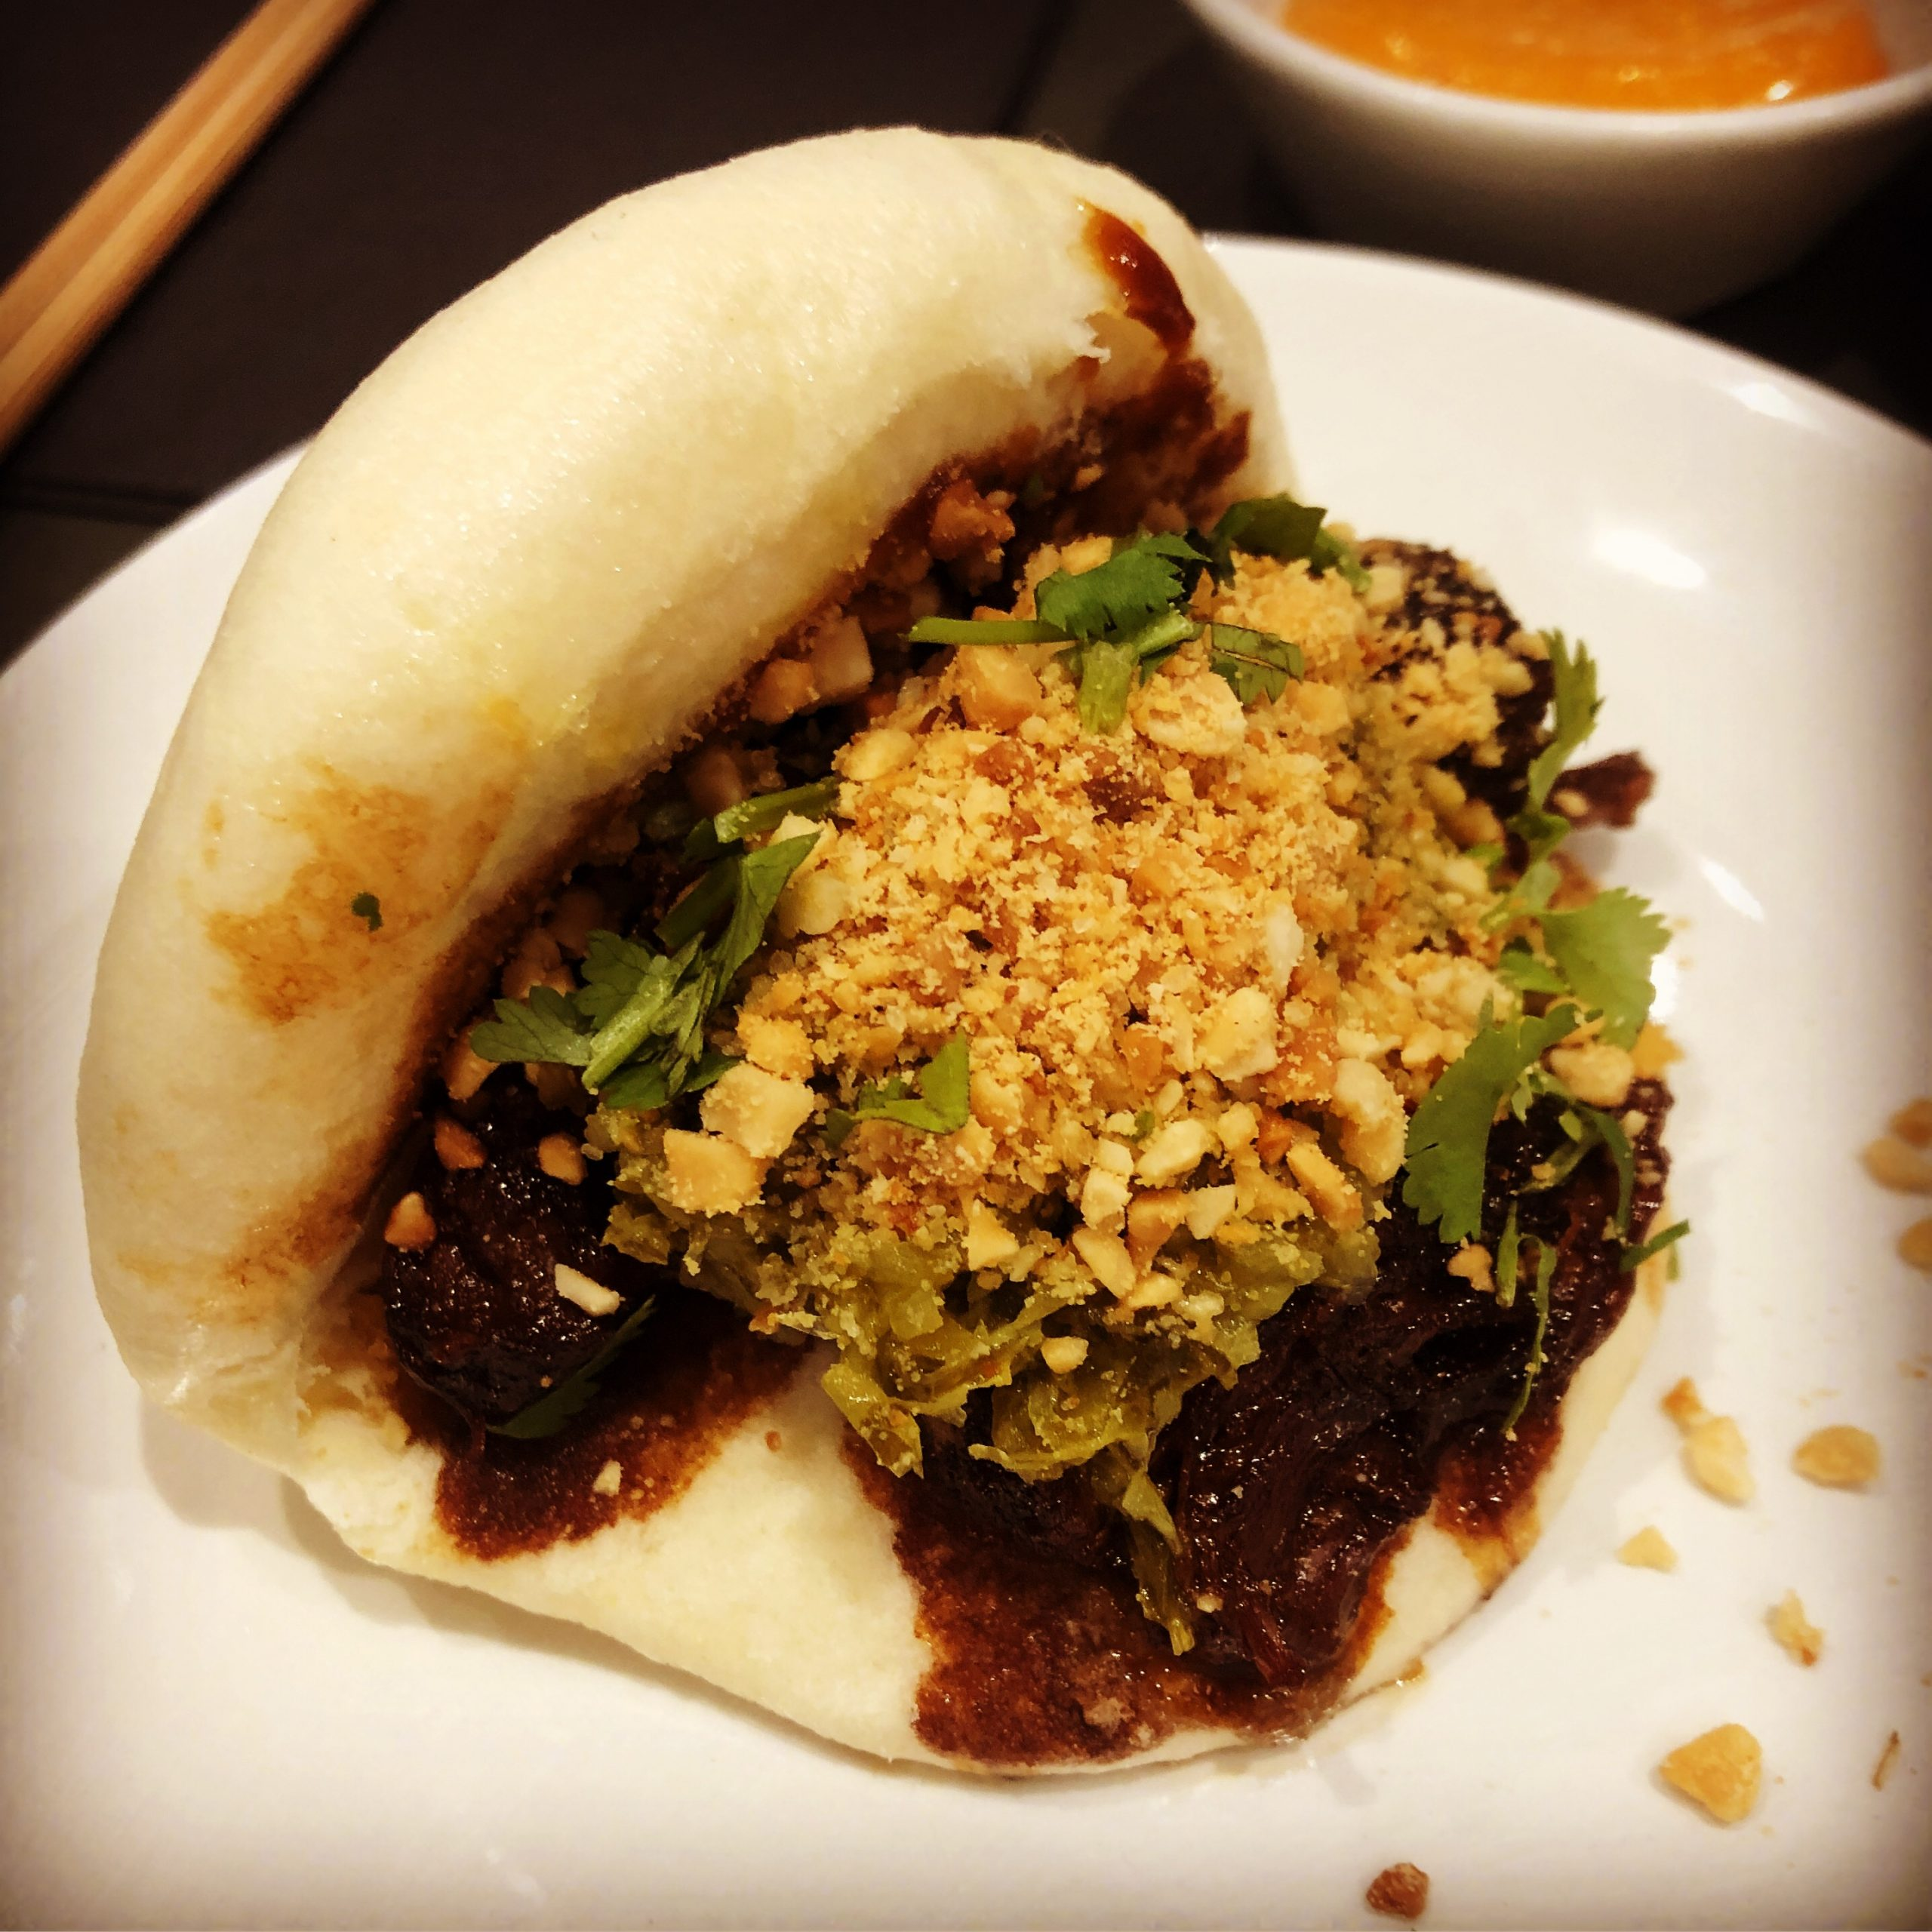 Mr Bao - slow braised pork with house pickles, roasted peanut and coriander